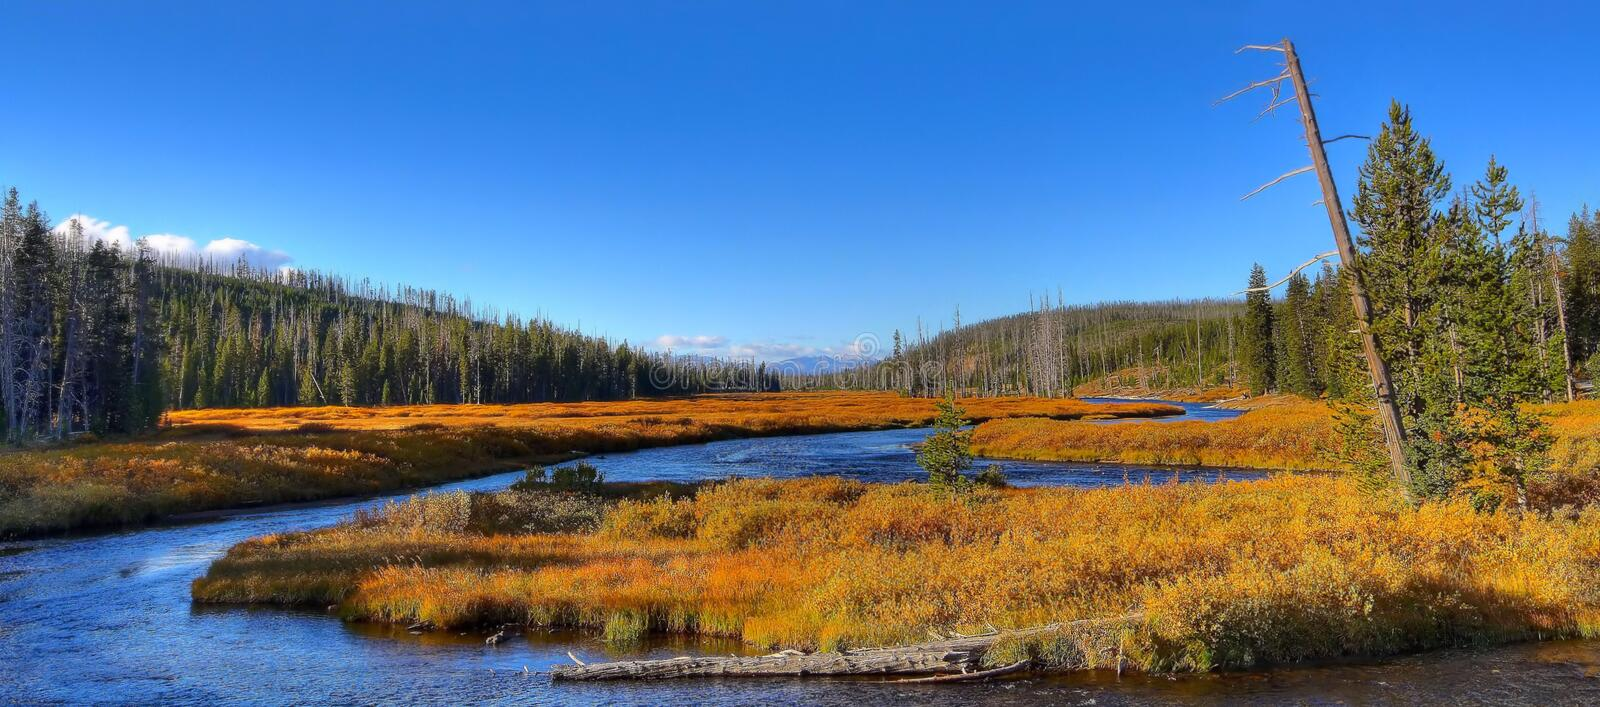 Winding Yellowstone River in Autumn royalty free stock photo